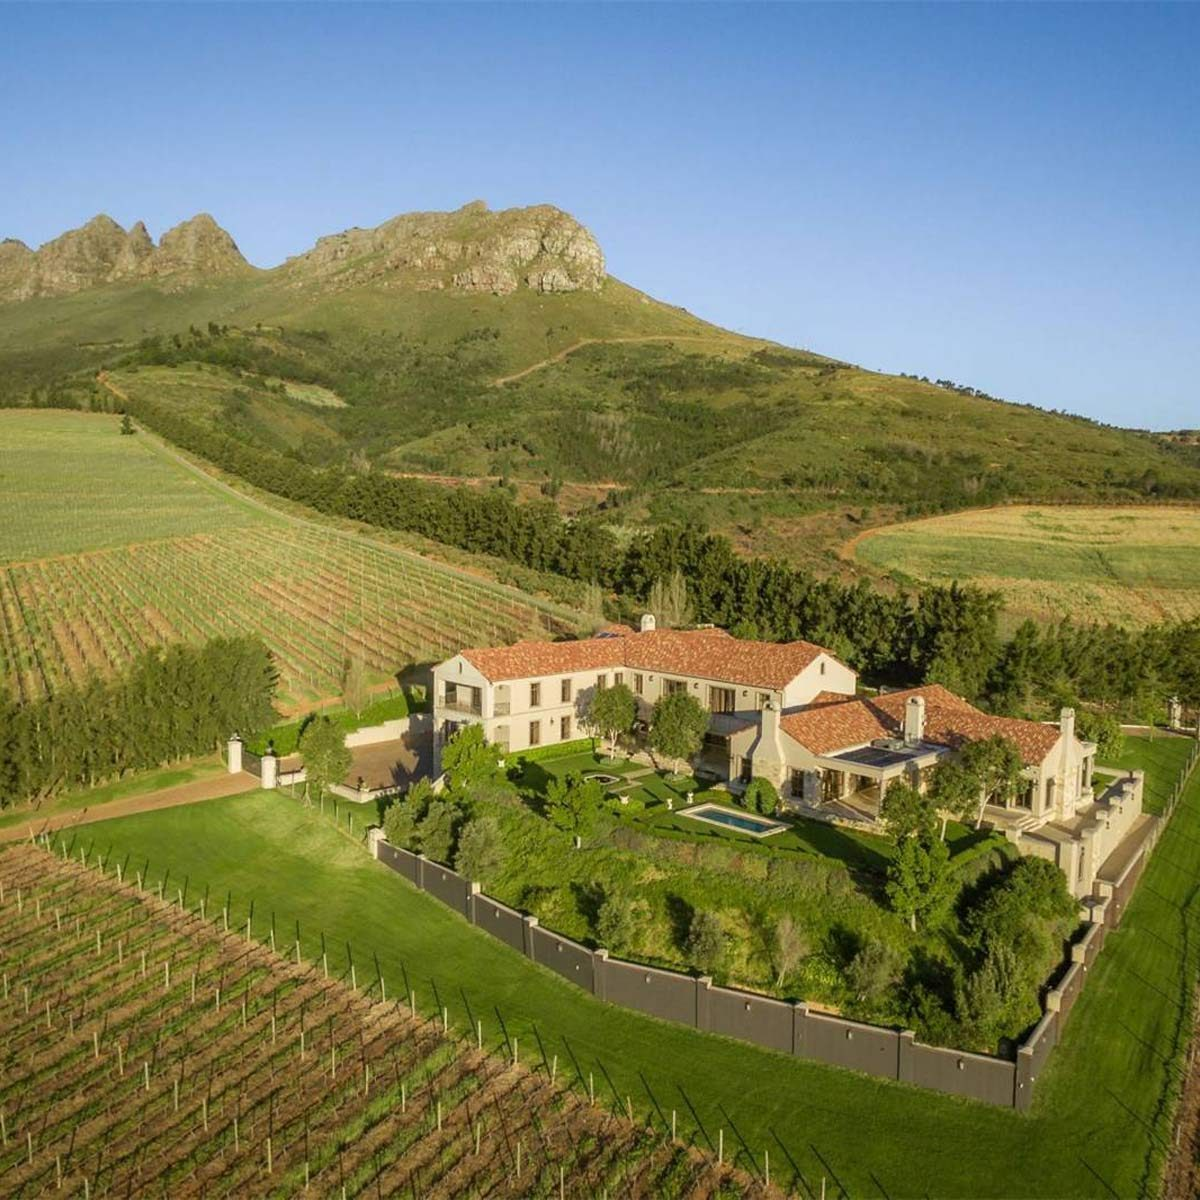 Mansion with a large vineyard near mountains in South Africa